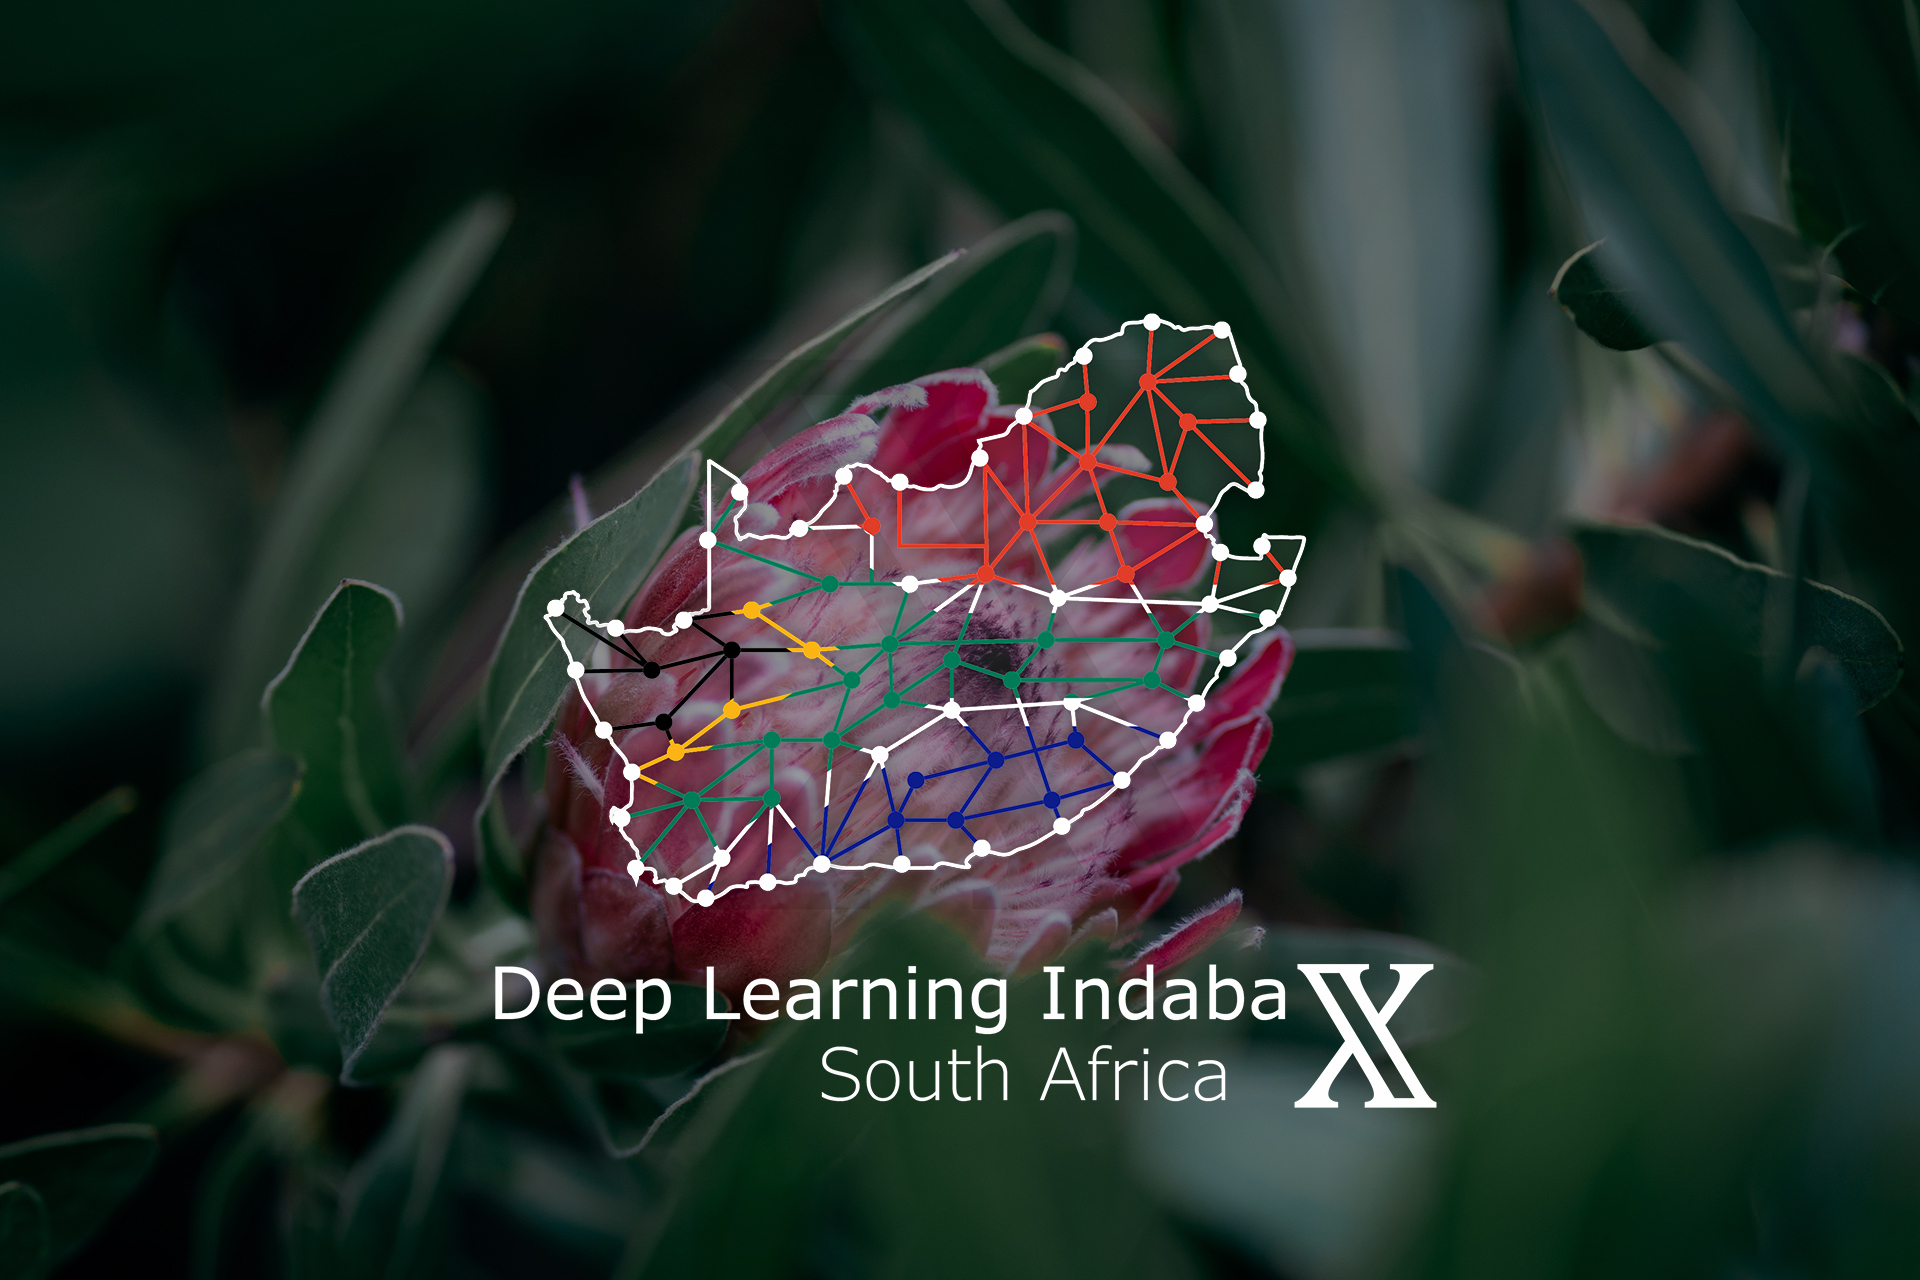 deep learning indabax South Africa